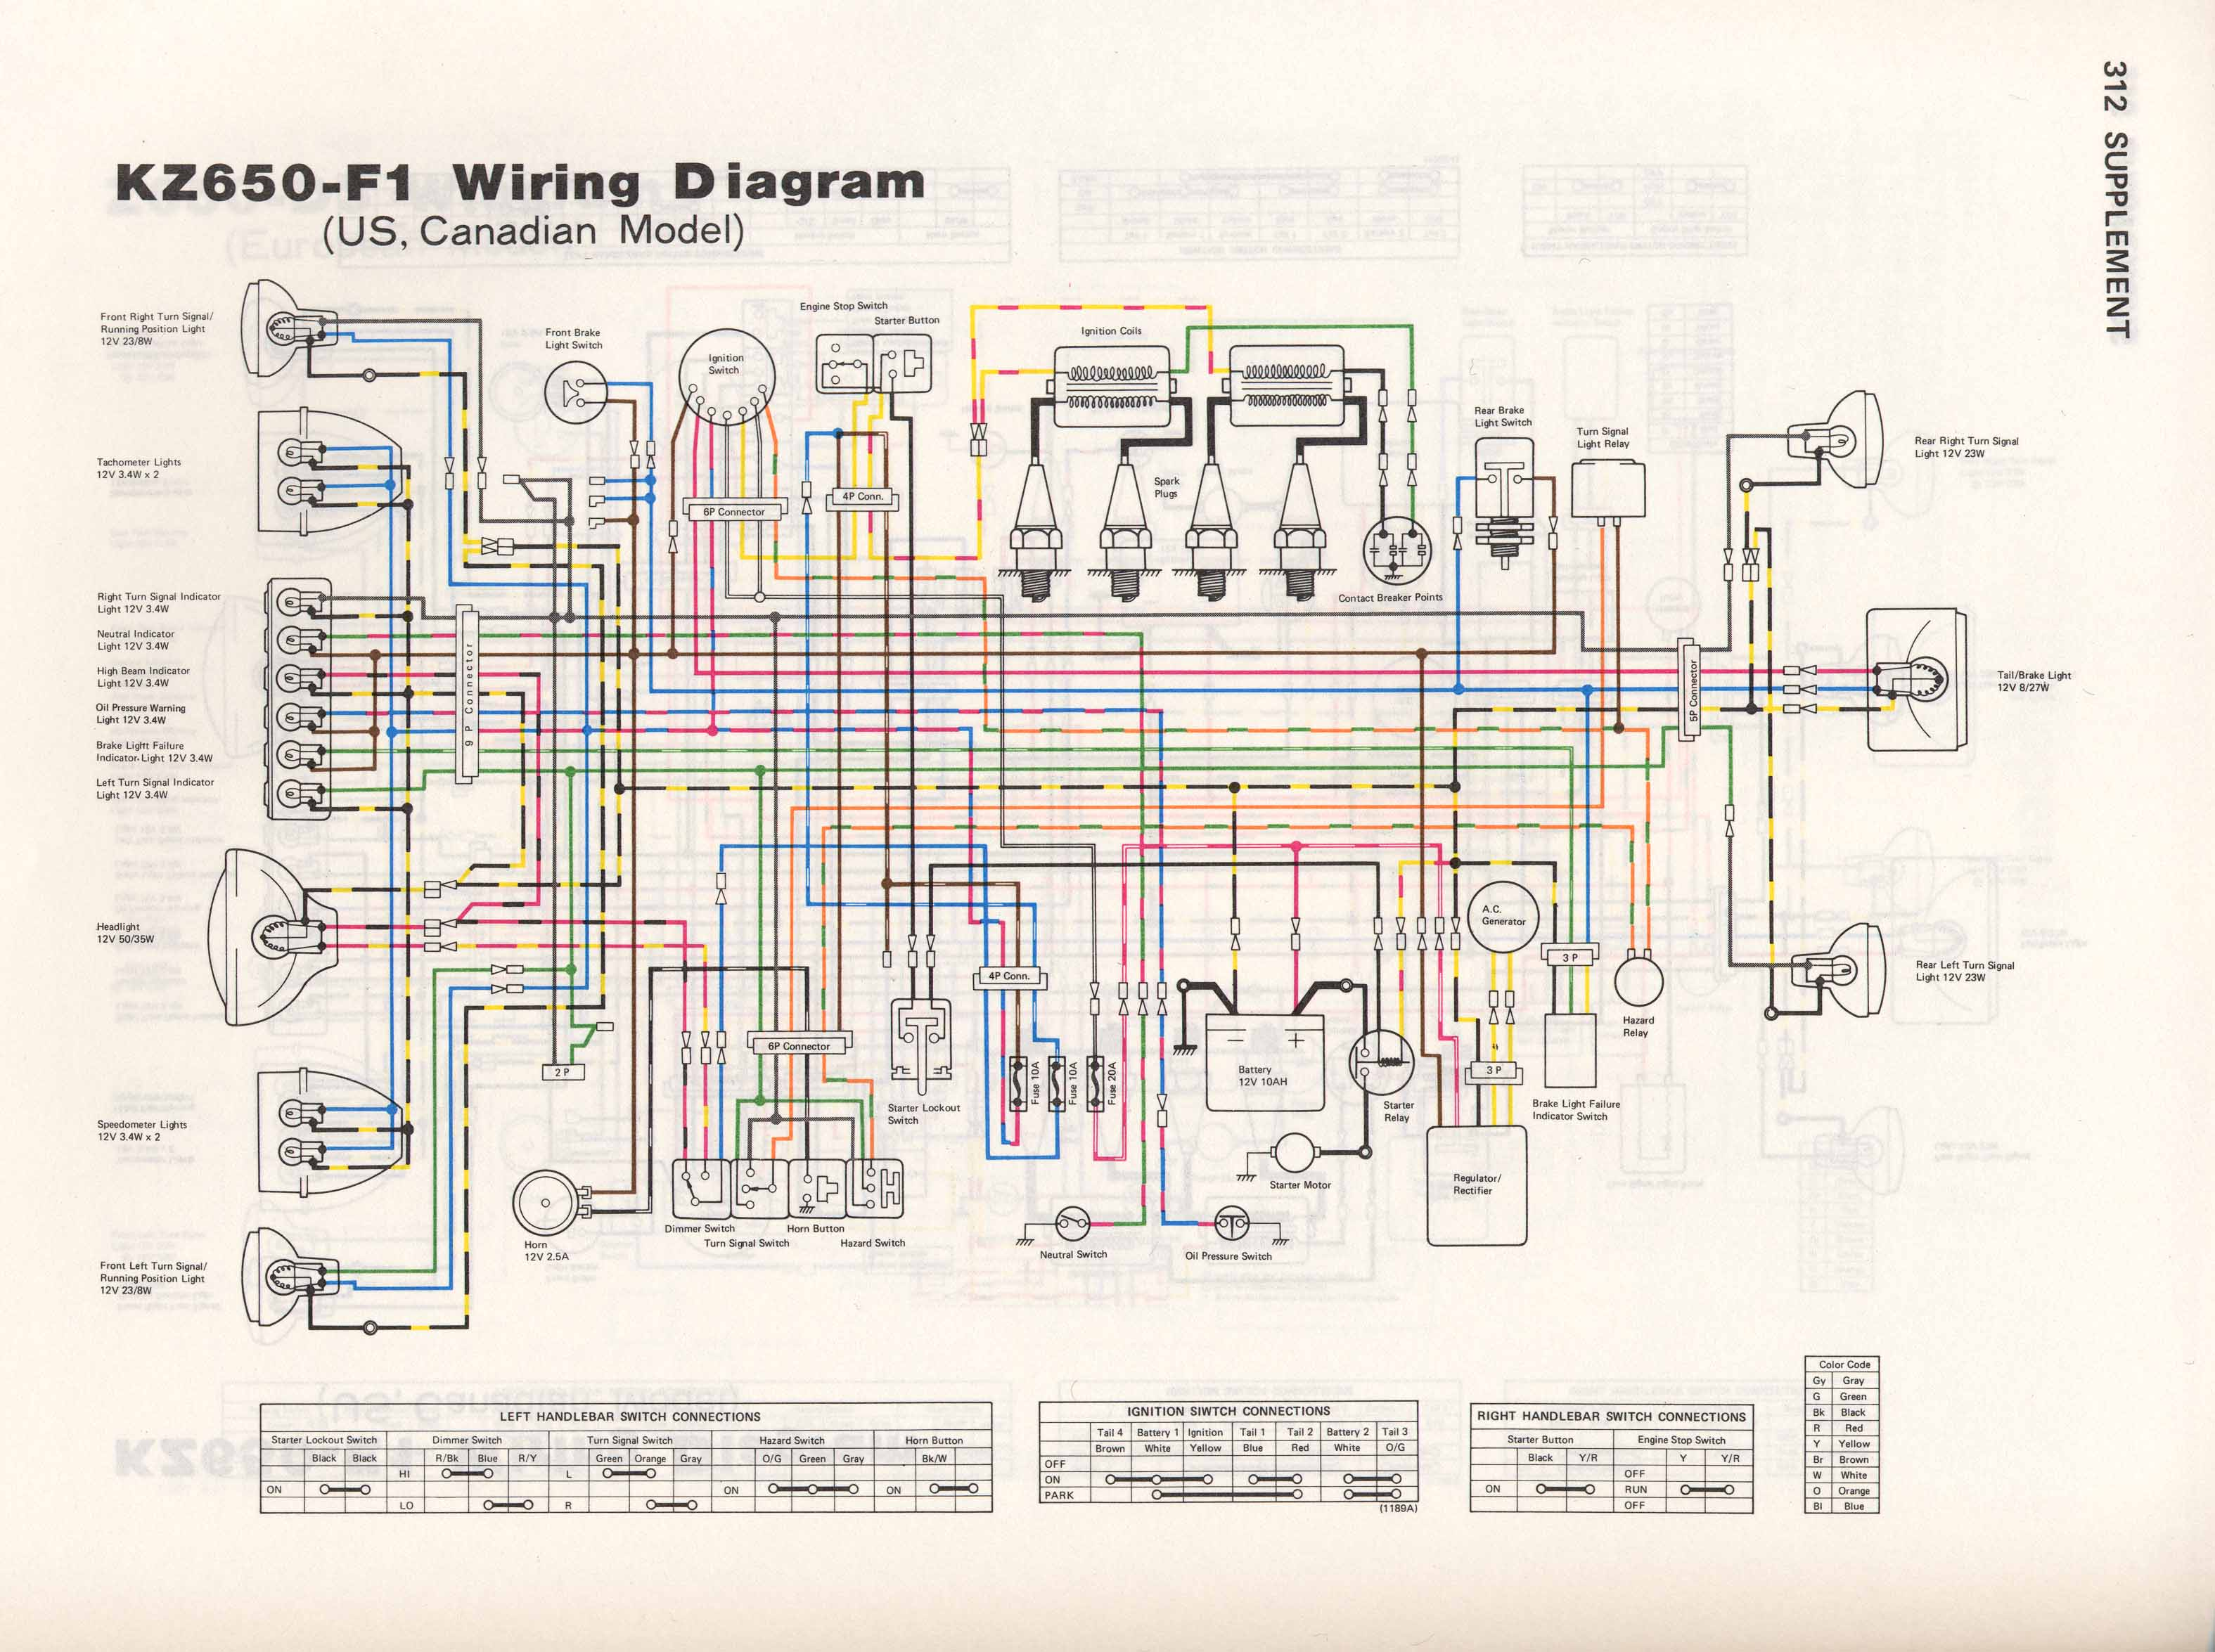 KZ650 F1 kz650 info wiring diagrams z650 wiring diagram at reclaimingppi.co